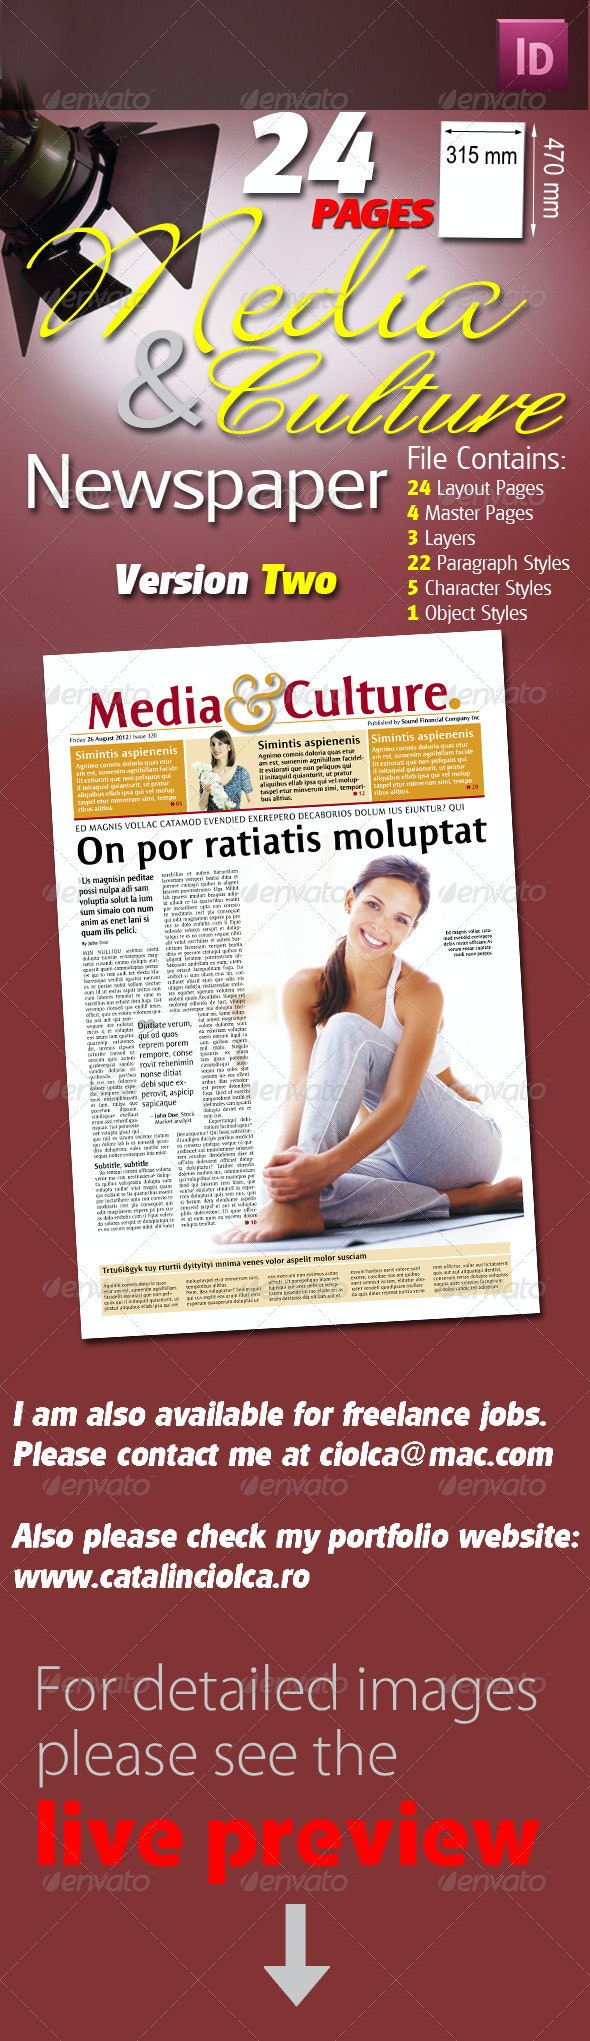 24 Pages Media & Culture Newspaper Version Two - Miscellaneous Print Templates